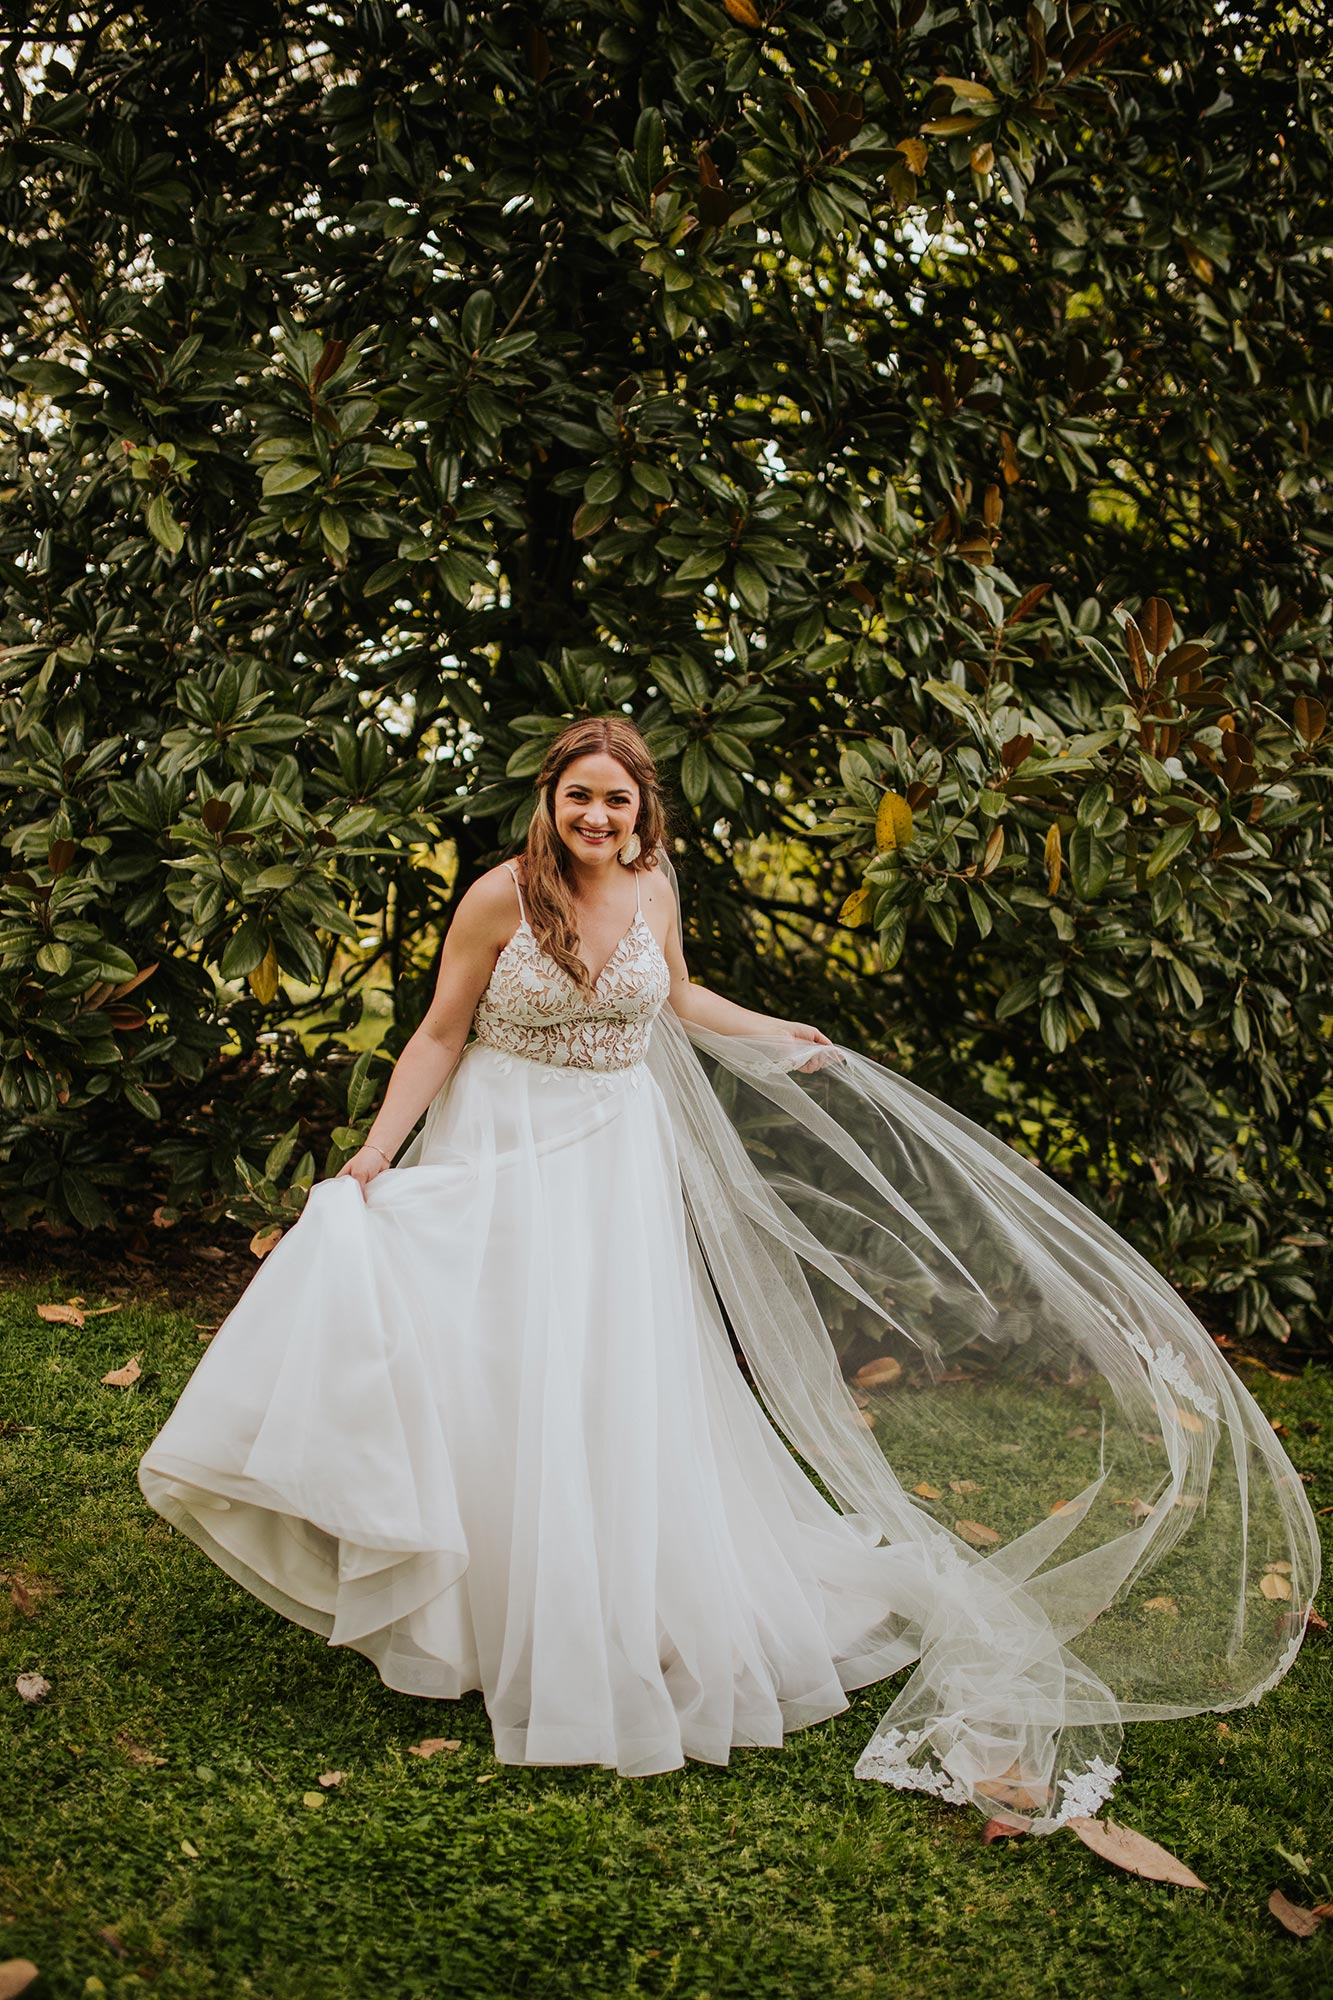 Lush wedding inspiration at Seven Springs VA with bride twirling in dress in grass Carly Romeo & Co.